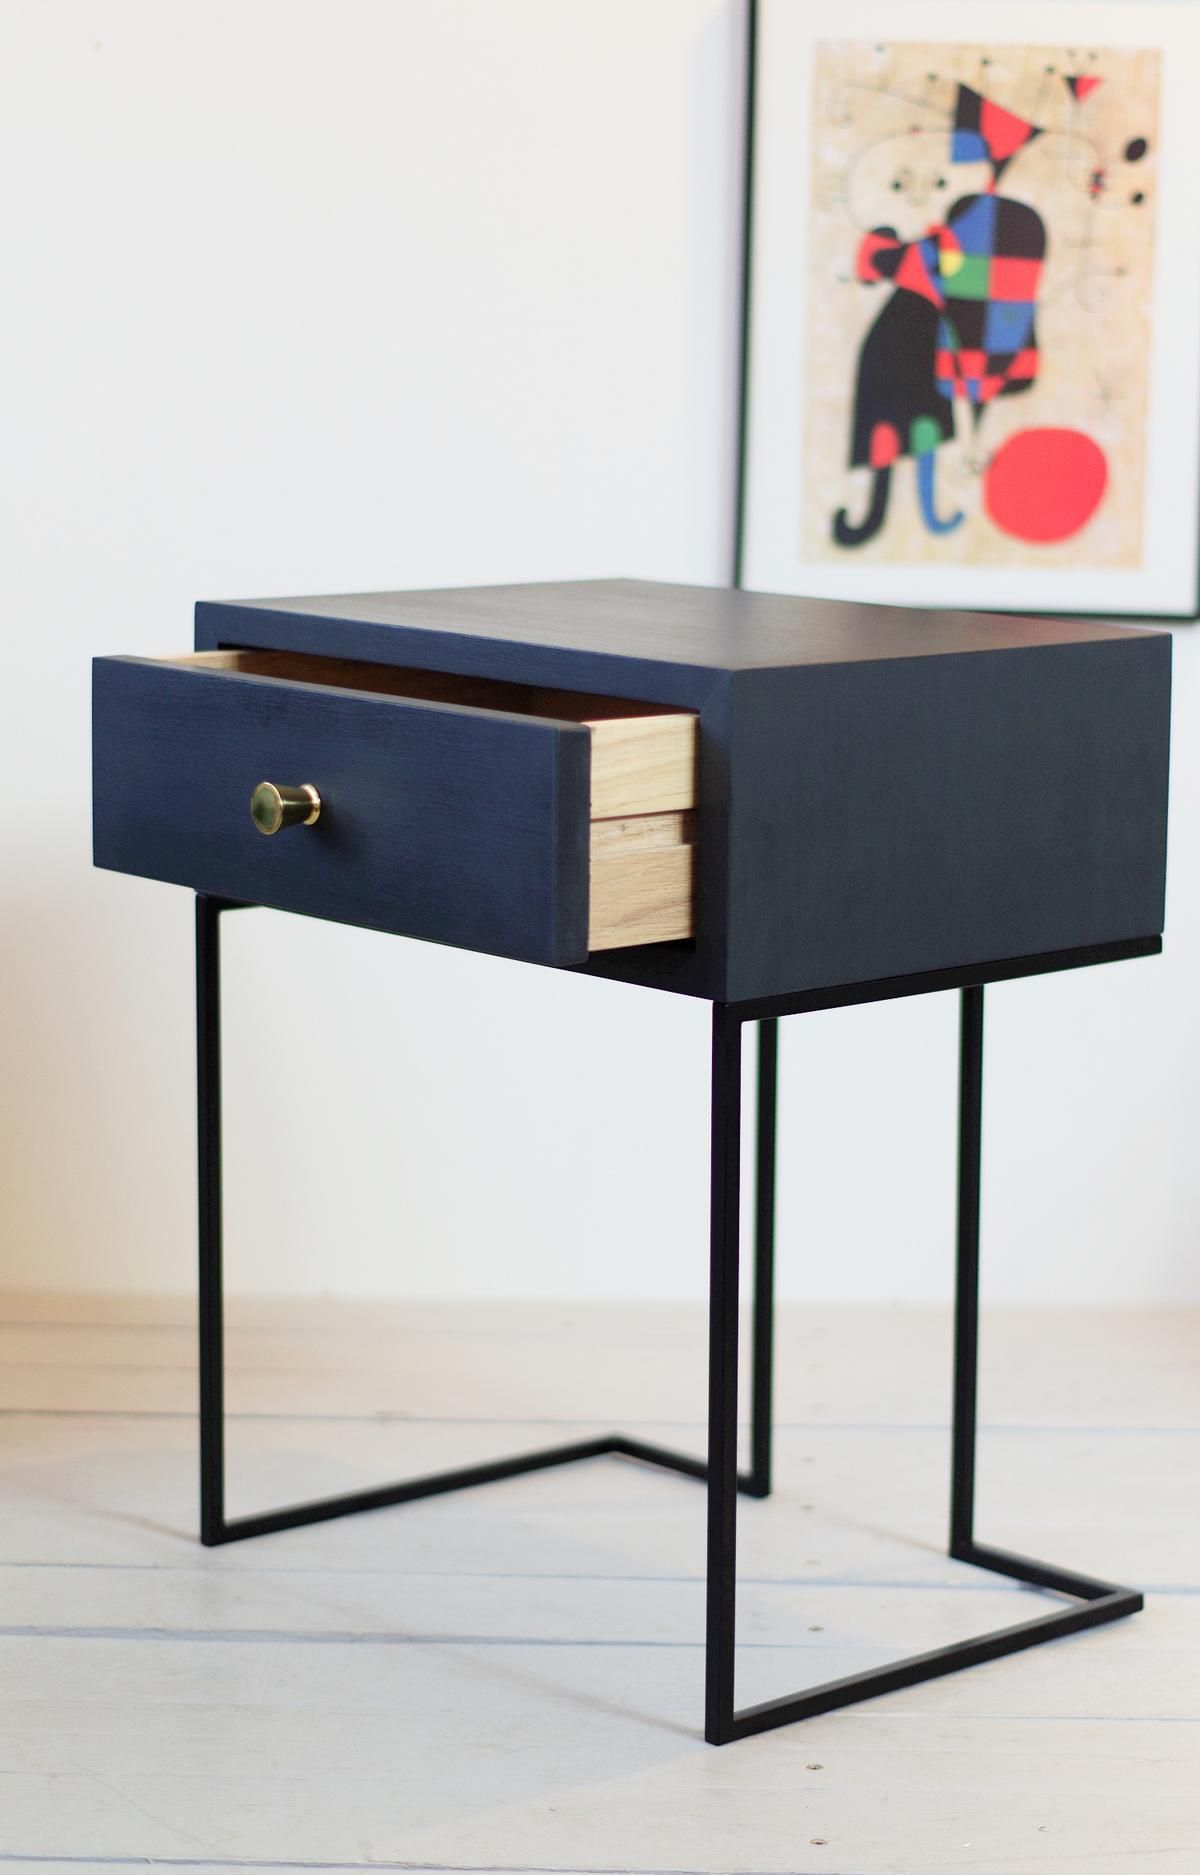 Black Metal Bedside Tables: NORD 02 NORDIC 02 Black Bedside Table By Aliusydecor In